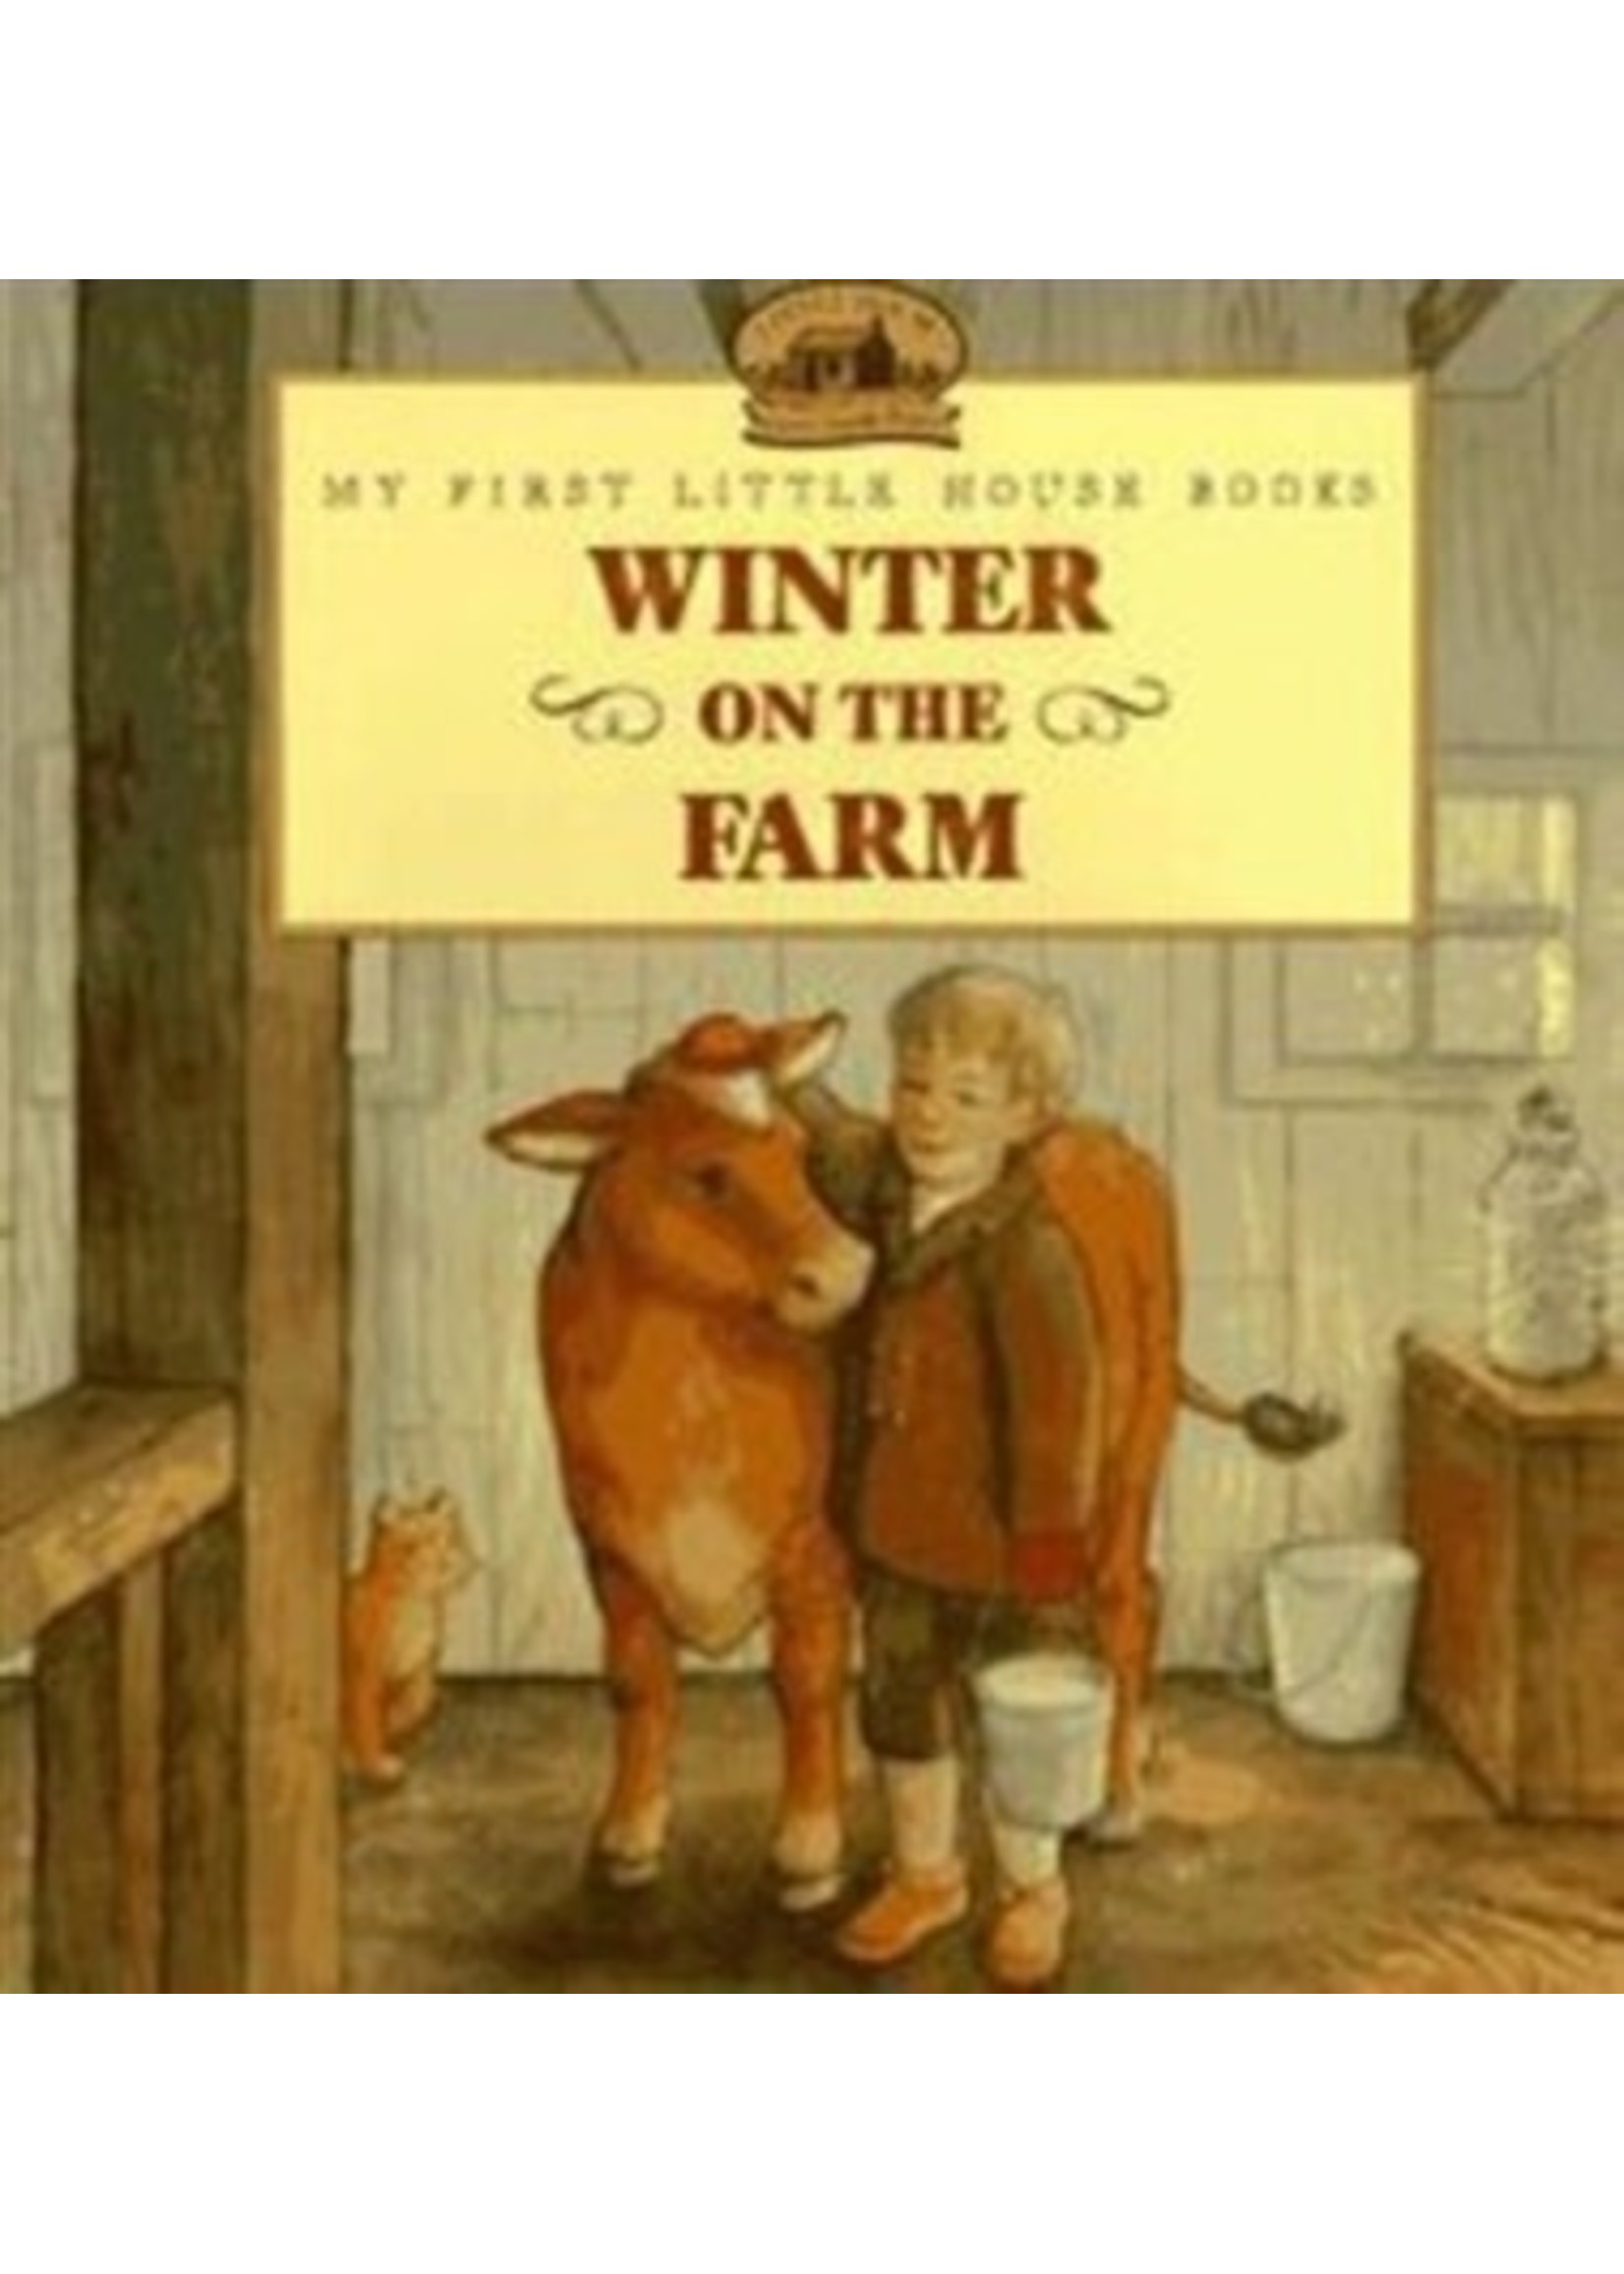 Winter on the Farm  -My First Little House Book